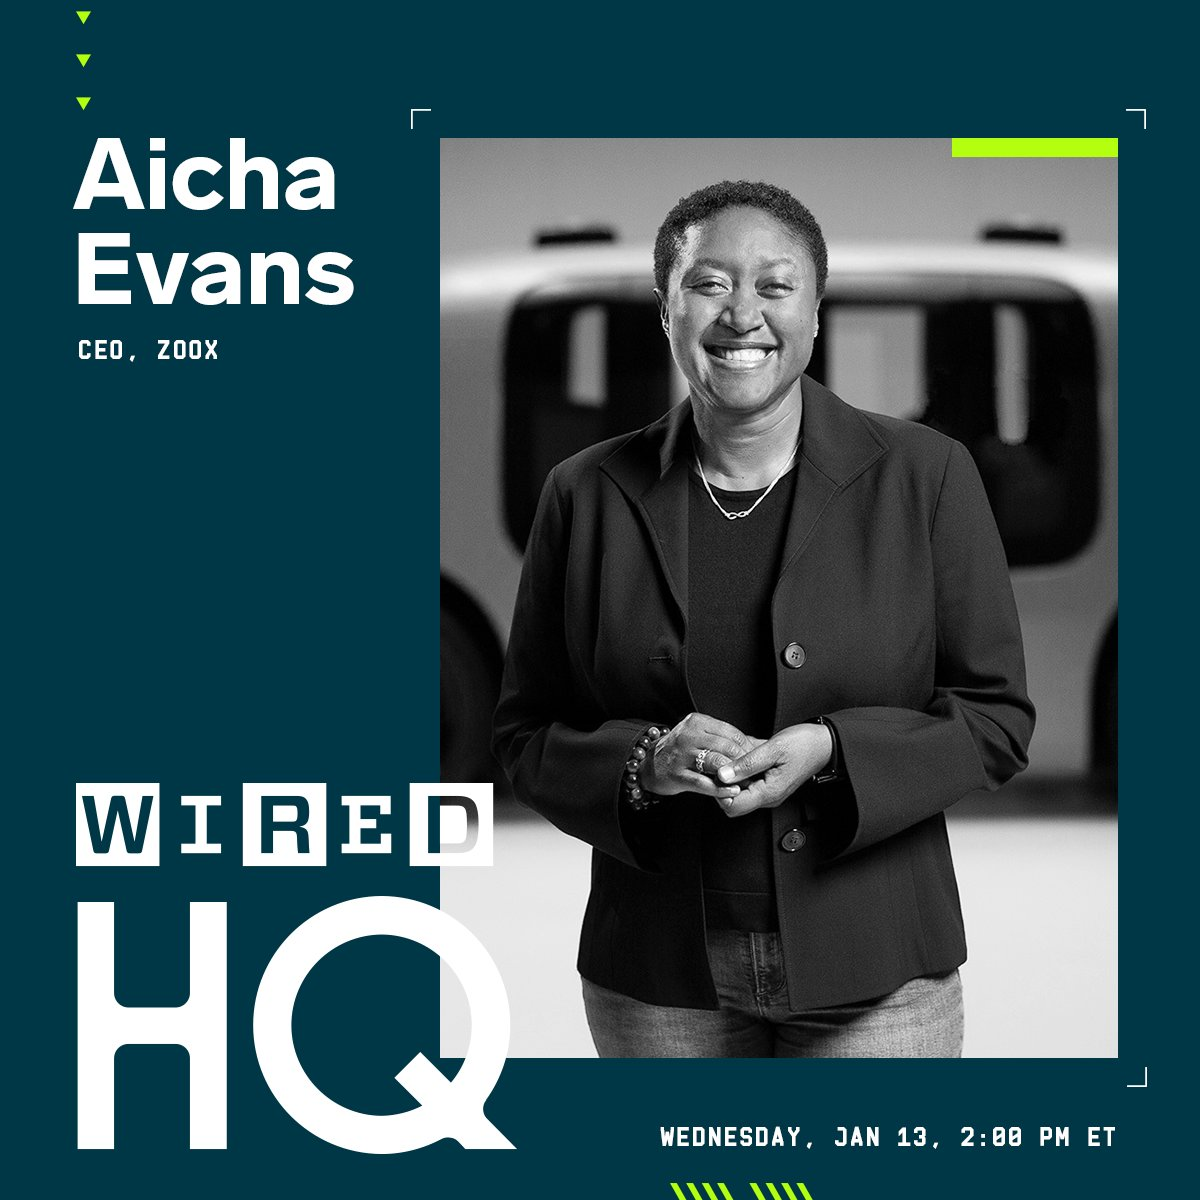 CES may look different this year, but innovation is still very much alive. Kick off 2021 with WIRED HQ, a free virtual experience featuring live keynotes and conversations about the biggest trends in tech.  It all starts Tuesday. Register here:  #WIREDHQ